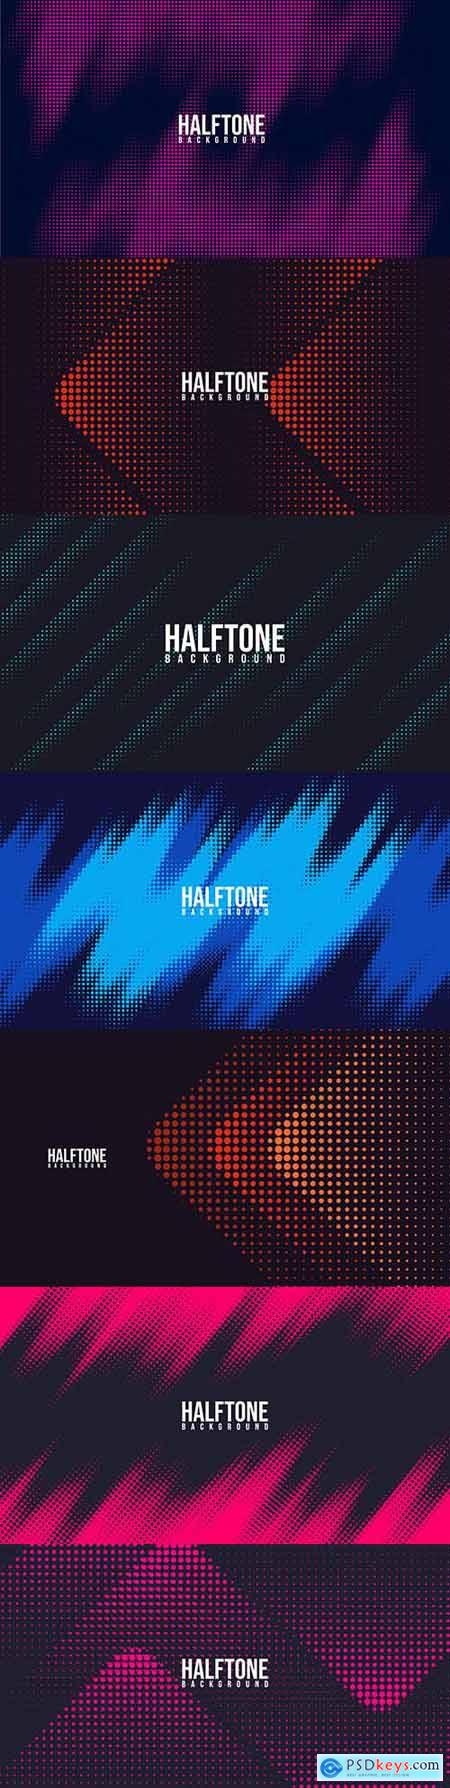 Gradient halftone abstract geometric creative background